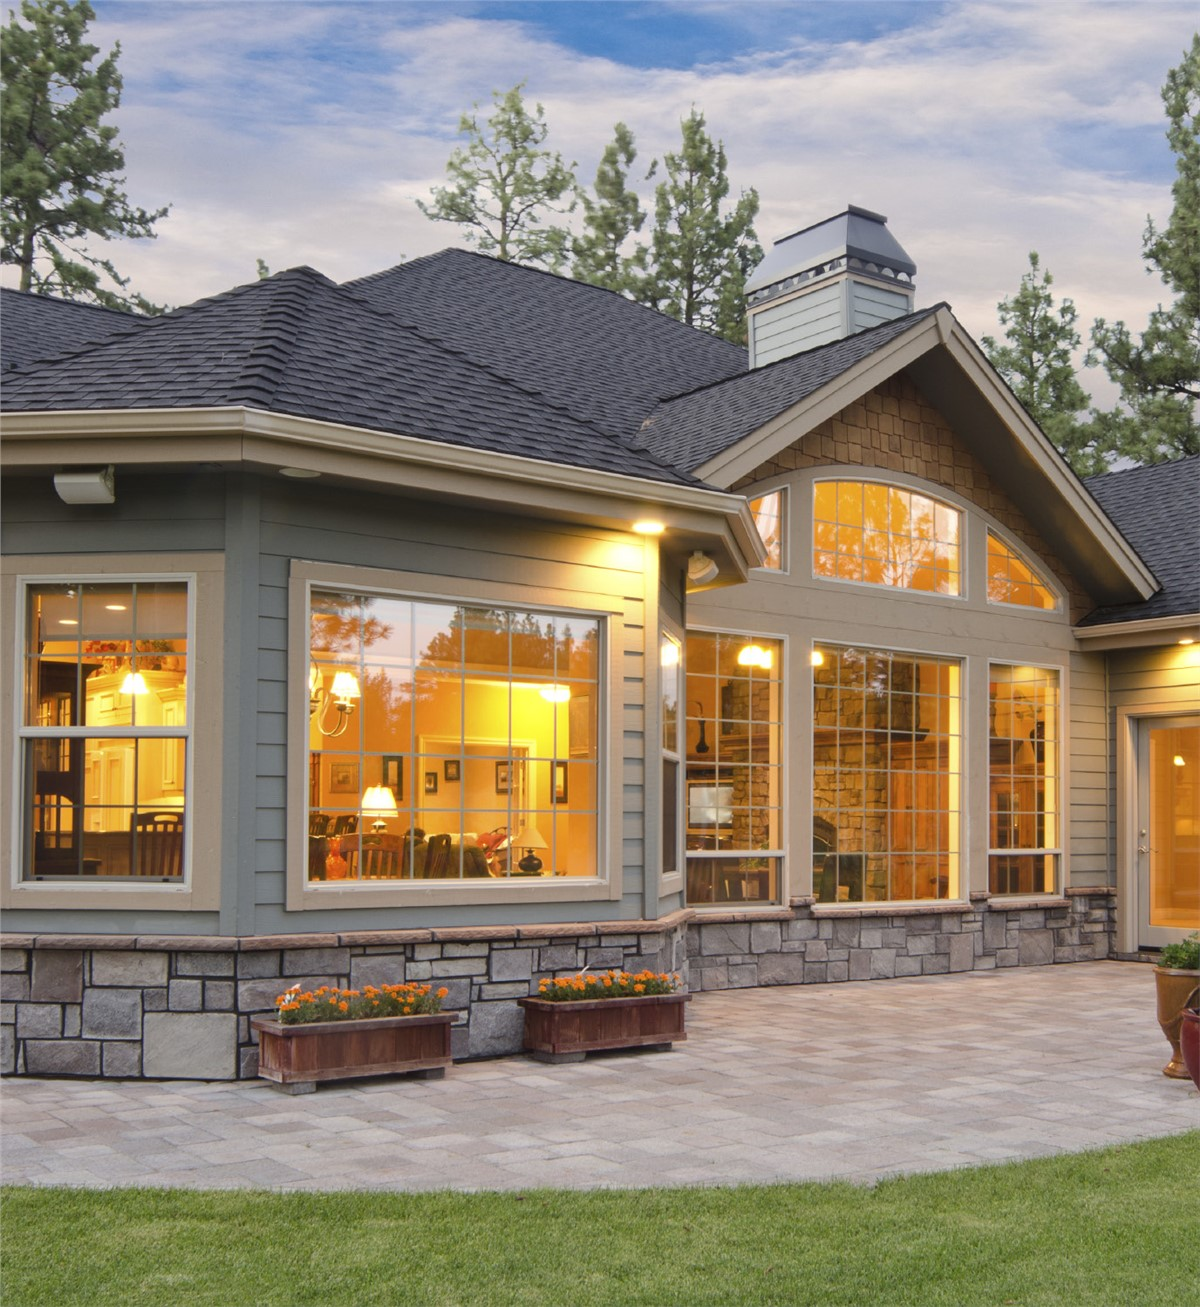 Home Remodeling: Madison Home Remodeling